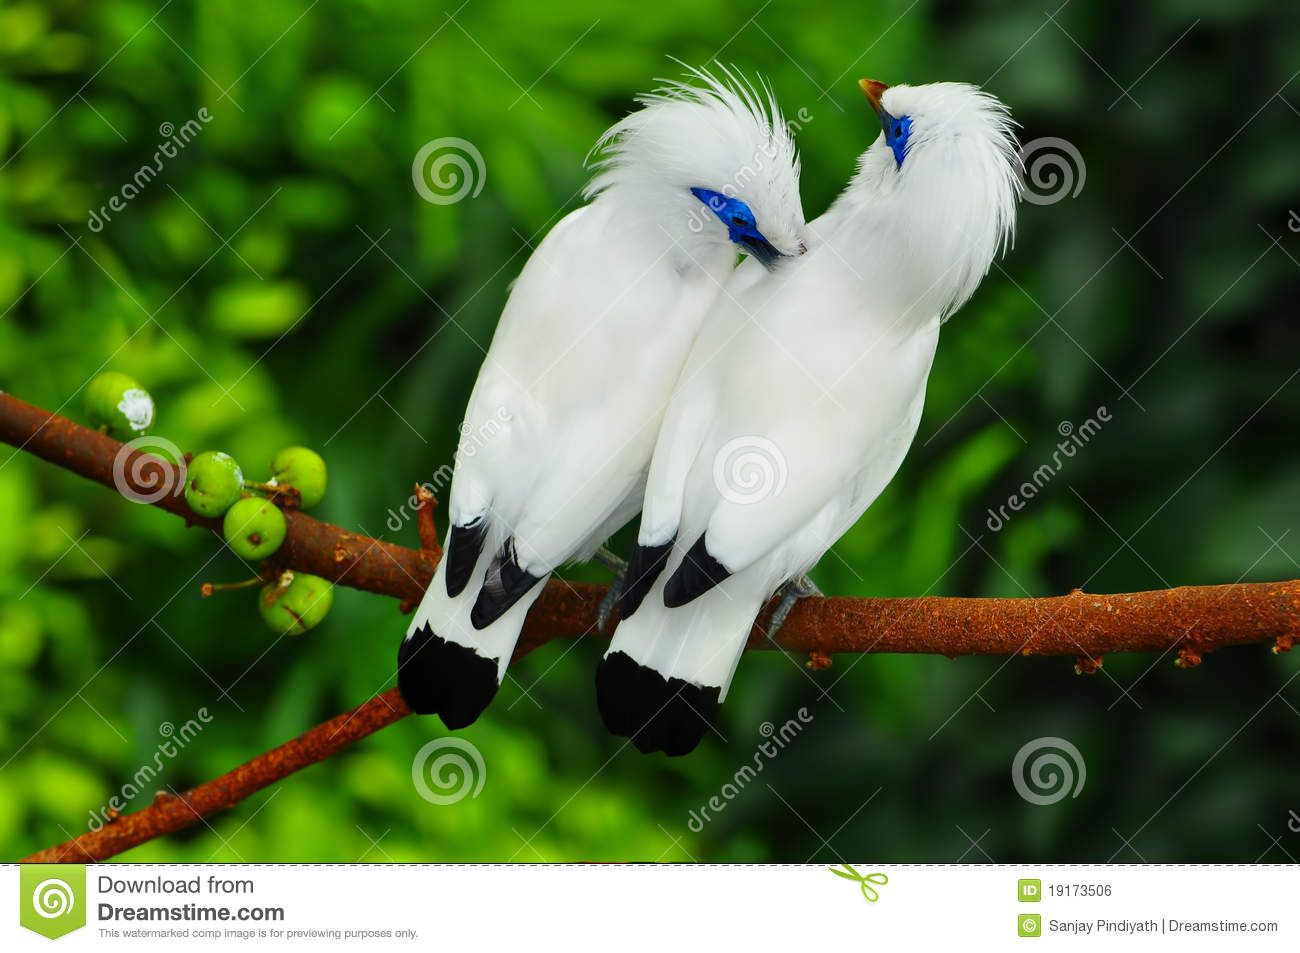 Bali Myna clipart #18, Download drawings